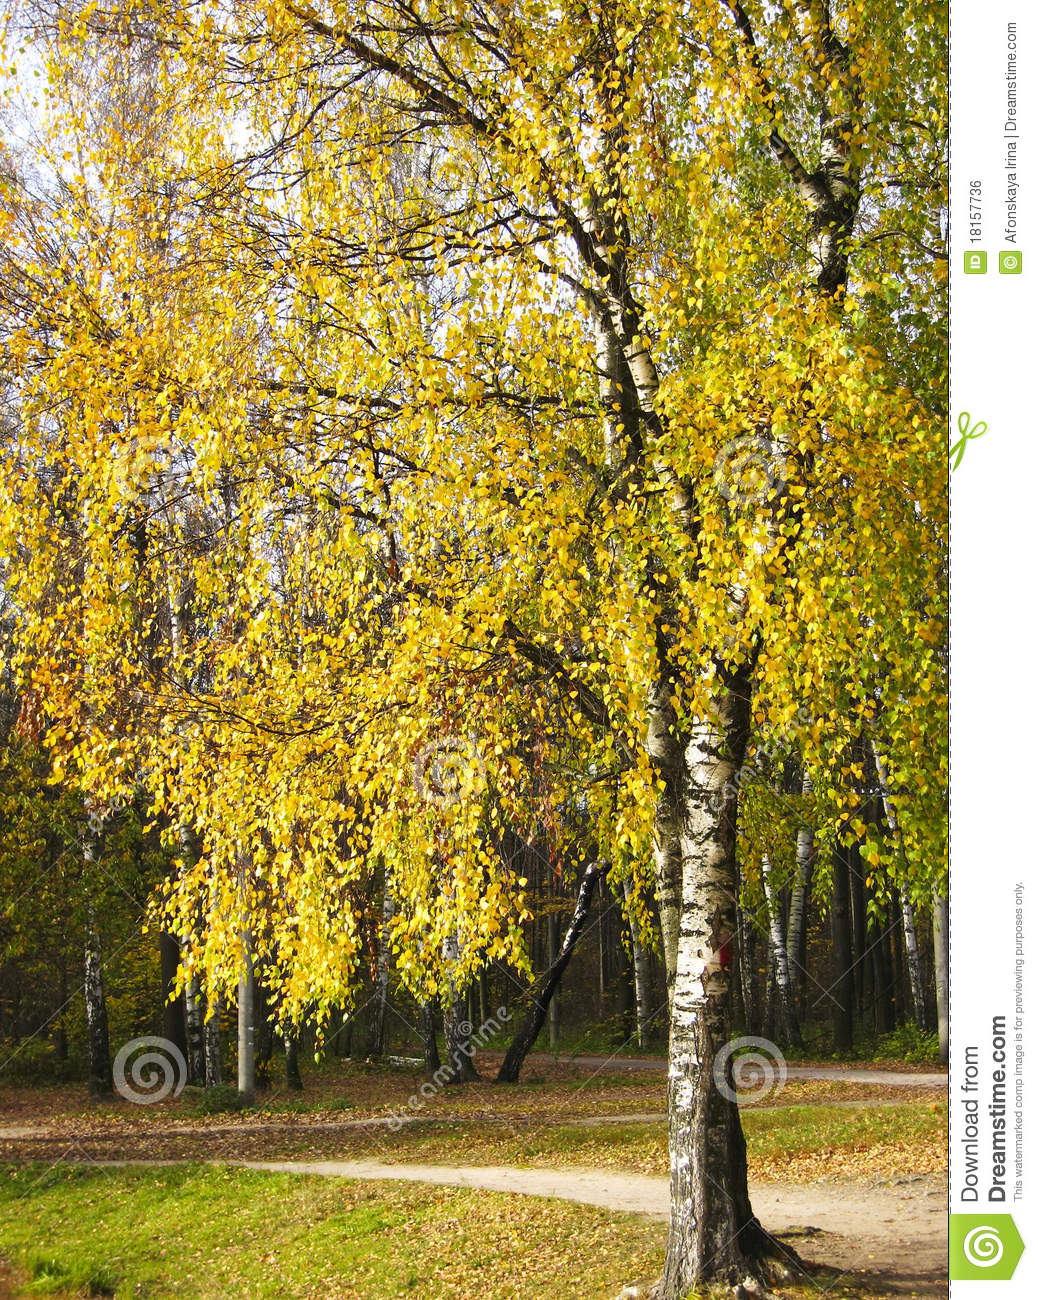 arbre de bouleau jaune photo stock image du bois saison 18157736. Black Bedroom Furniture Sets. Home Design Ideas